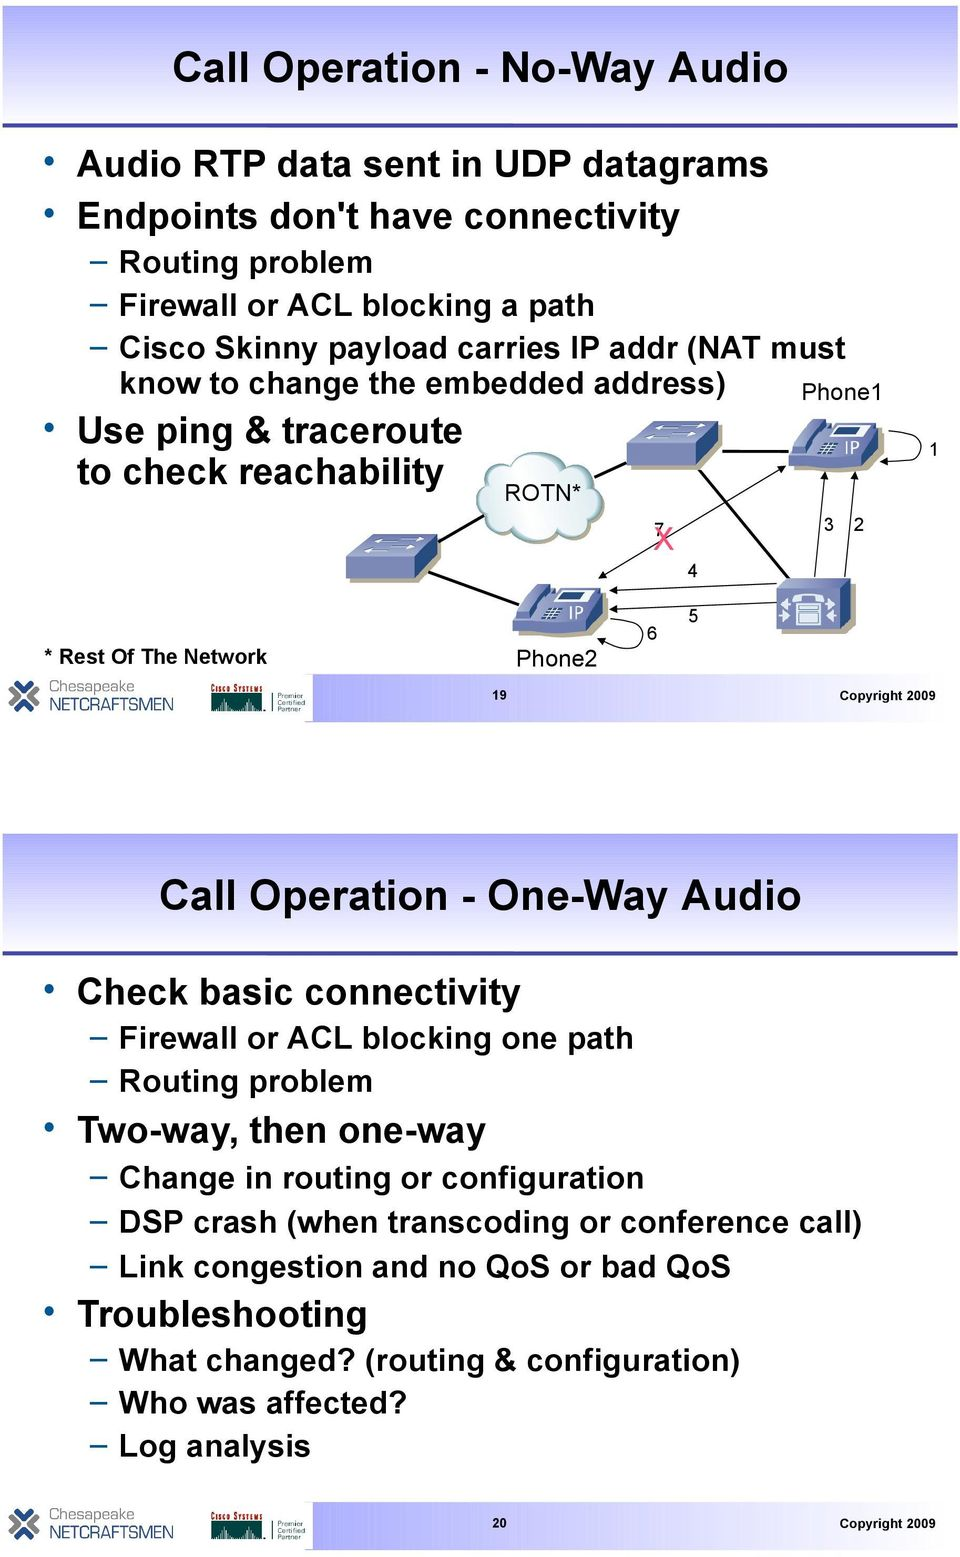 6 5 19 Call Operation - One-Way Audio Check basic connectivity Firewall or ACL blocking one path Routing problem Two-way, then one-way Change in routing or